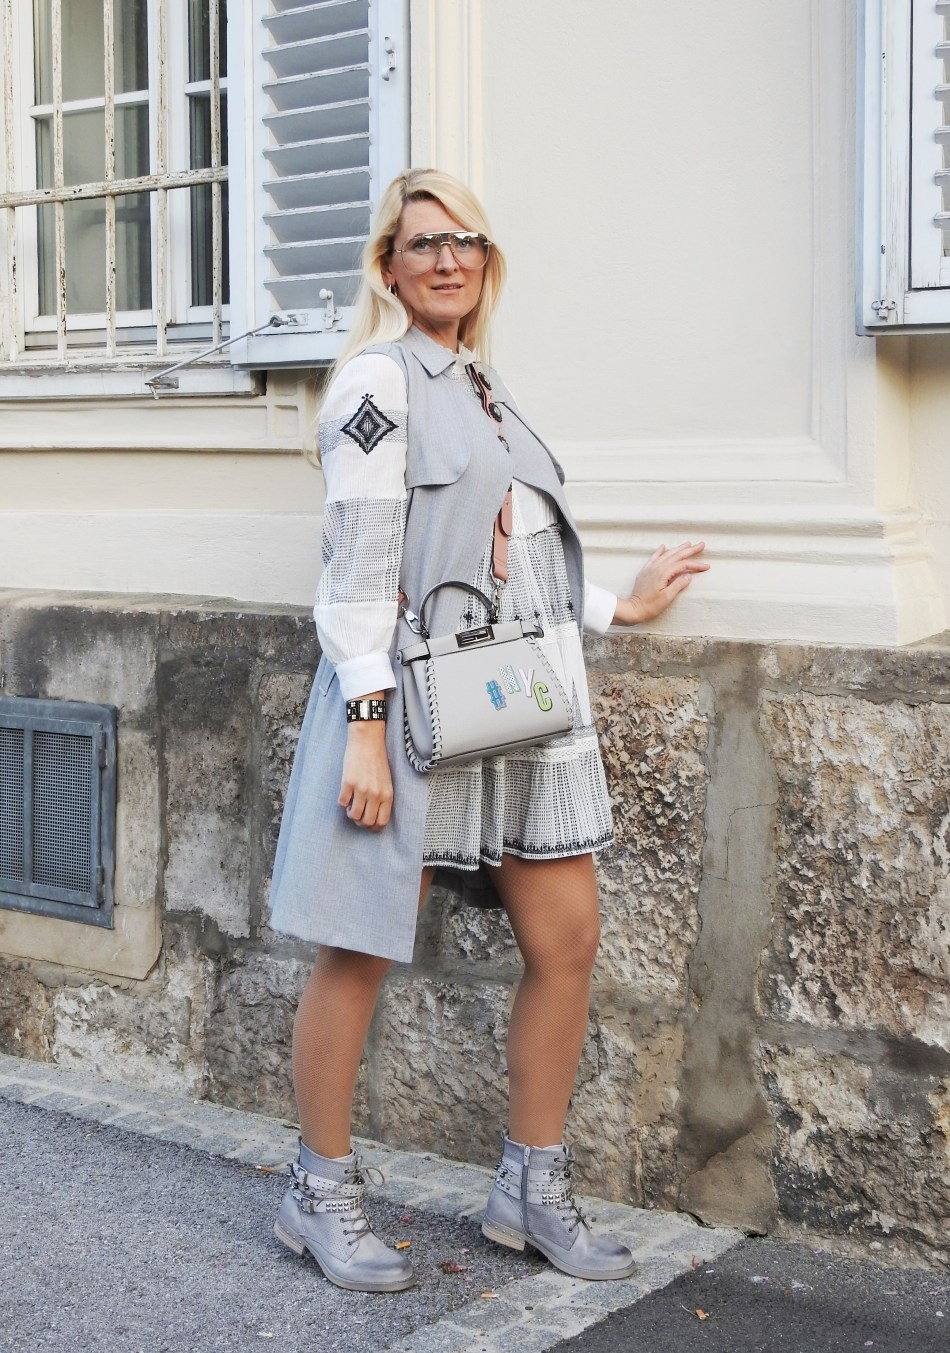 Folklore-Dress-Zara-grey-Boots-Studs-Studded-Fendi-Bag-carrieslifestyle-Tamara-Prutsch